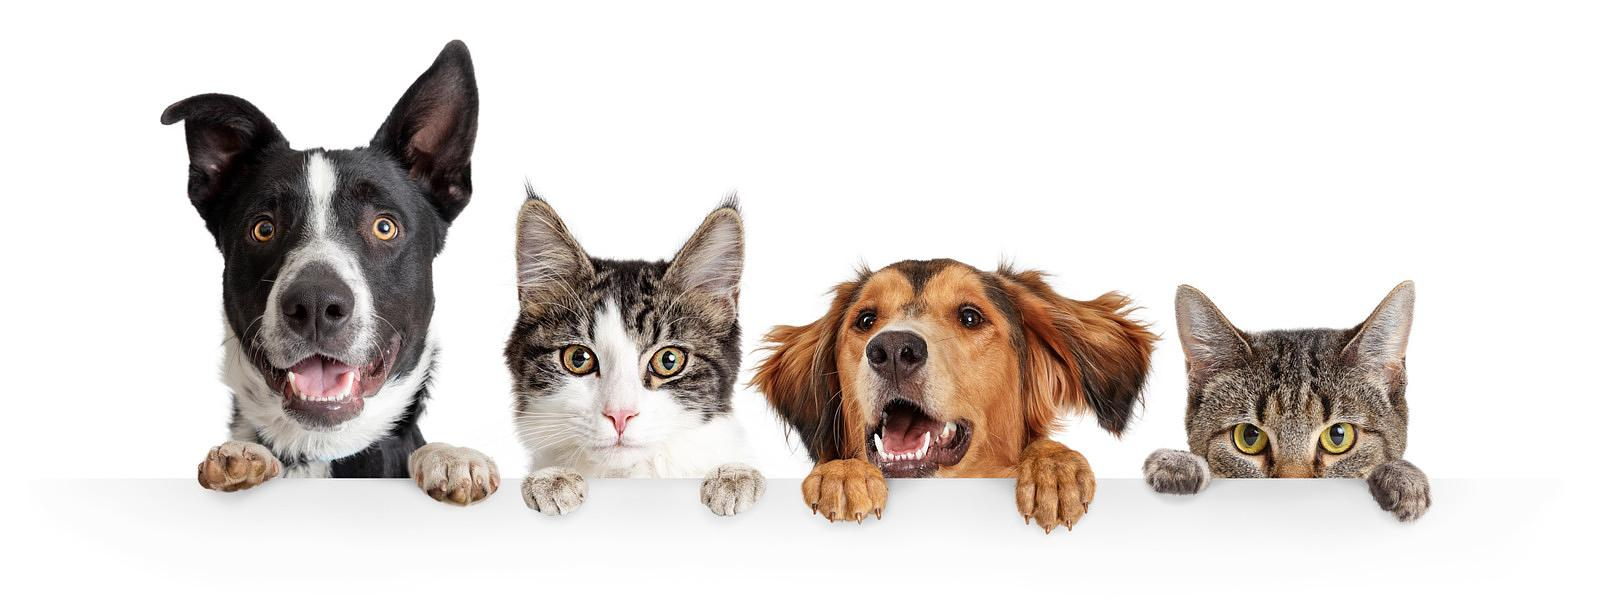 Cats-and-Dogs-Peeking-Over-White-Web-Banner